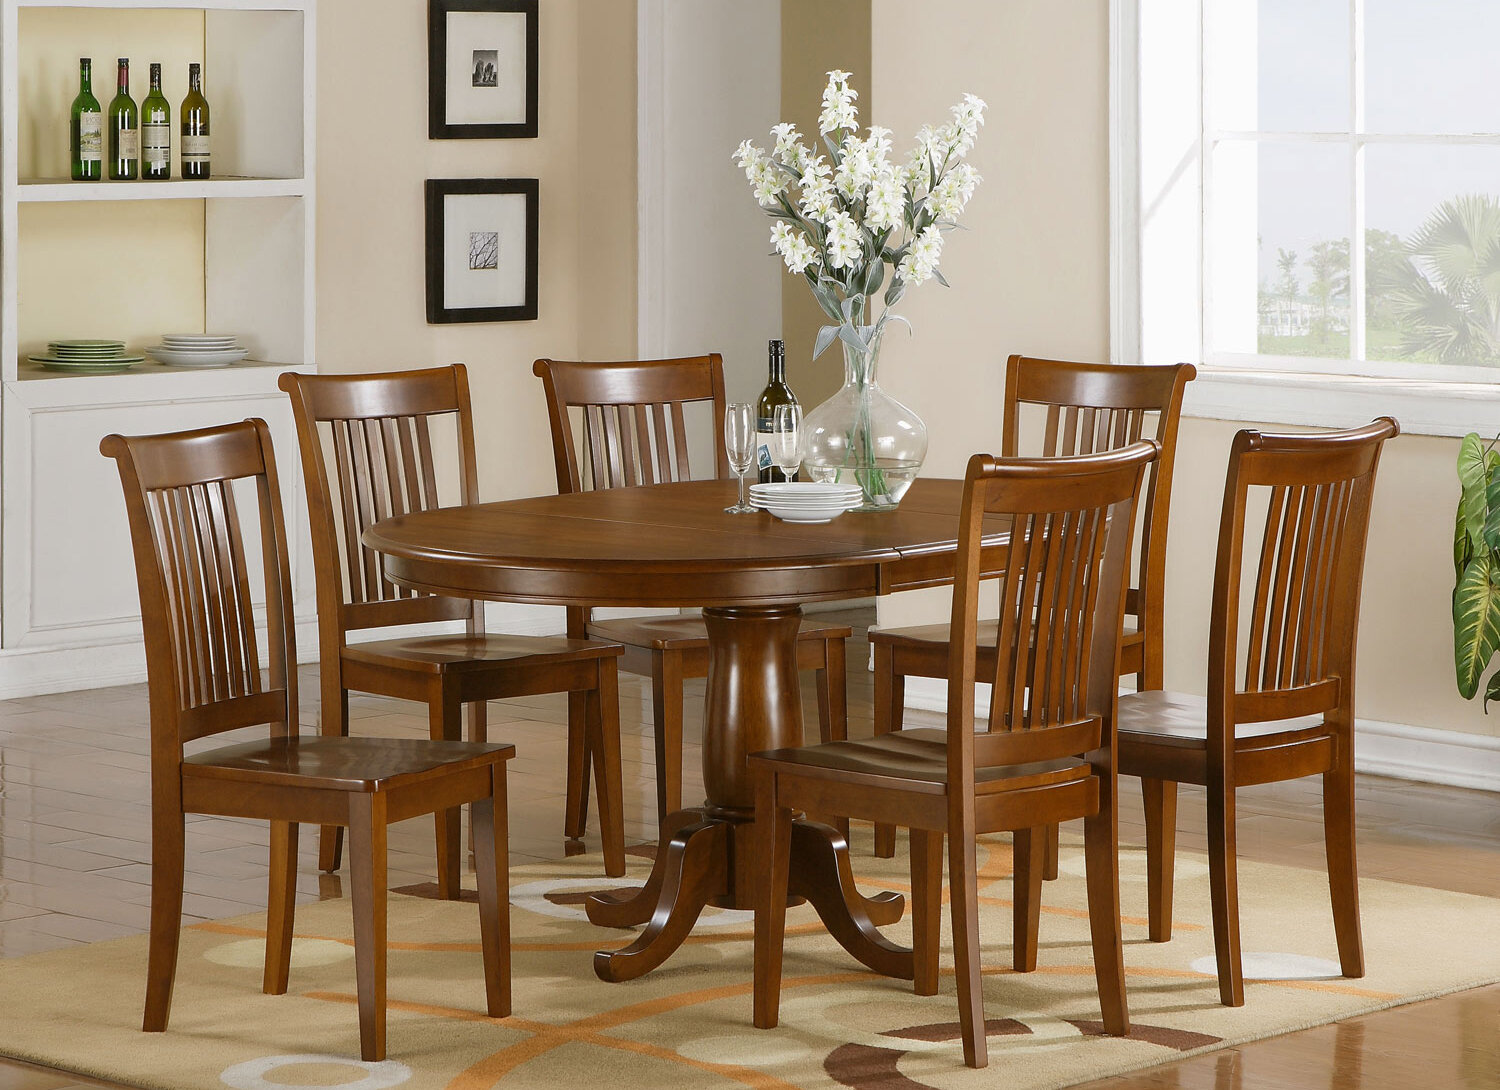 Oval Seats 9 Kitchen & Dining Room Sets & Tables You'll Love in ...